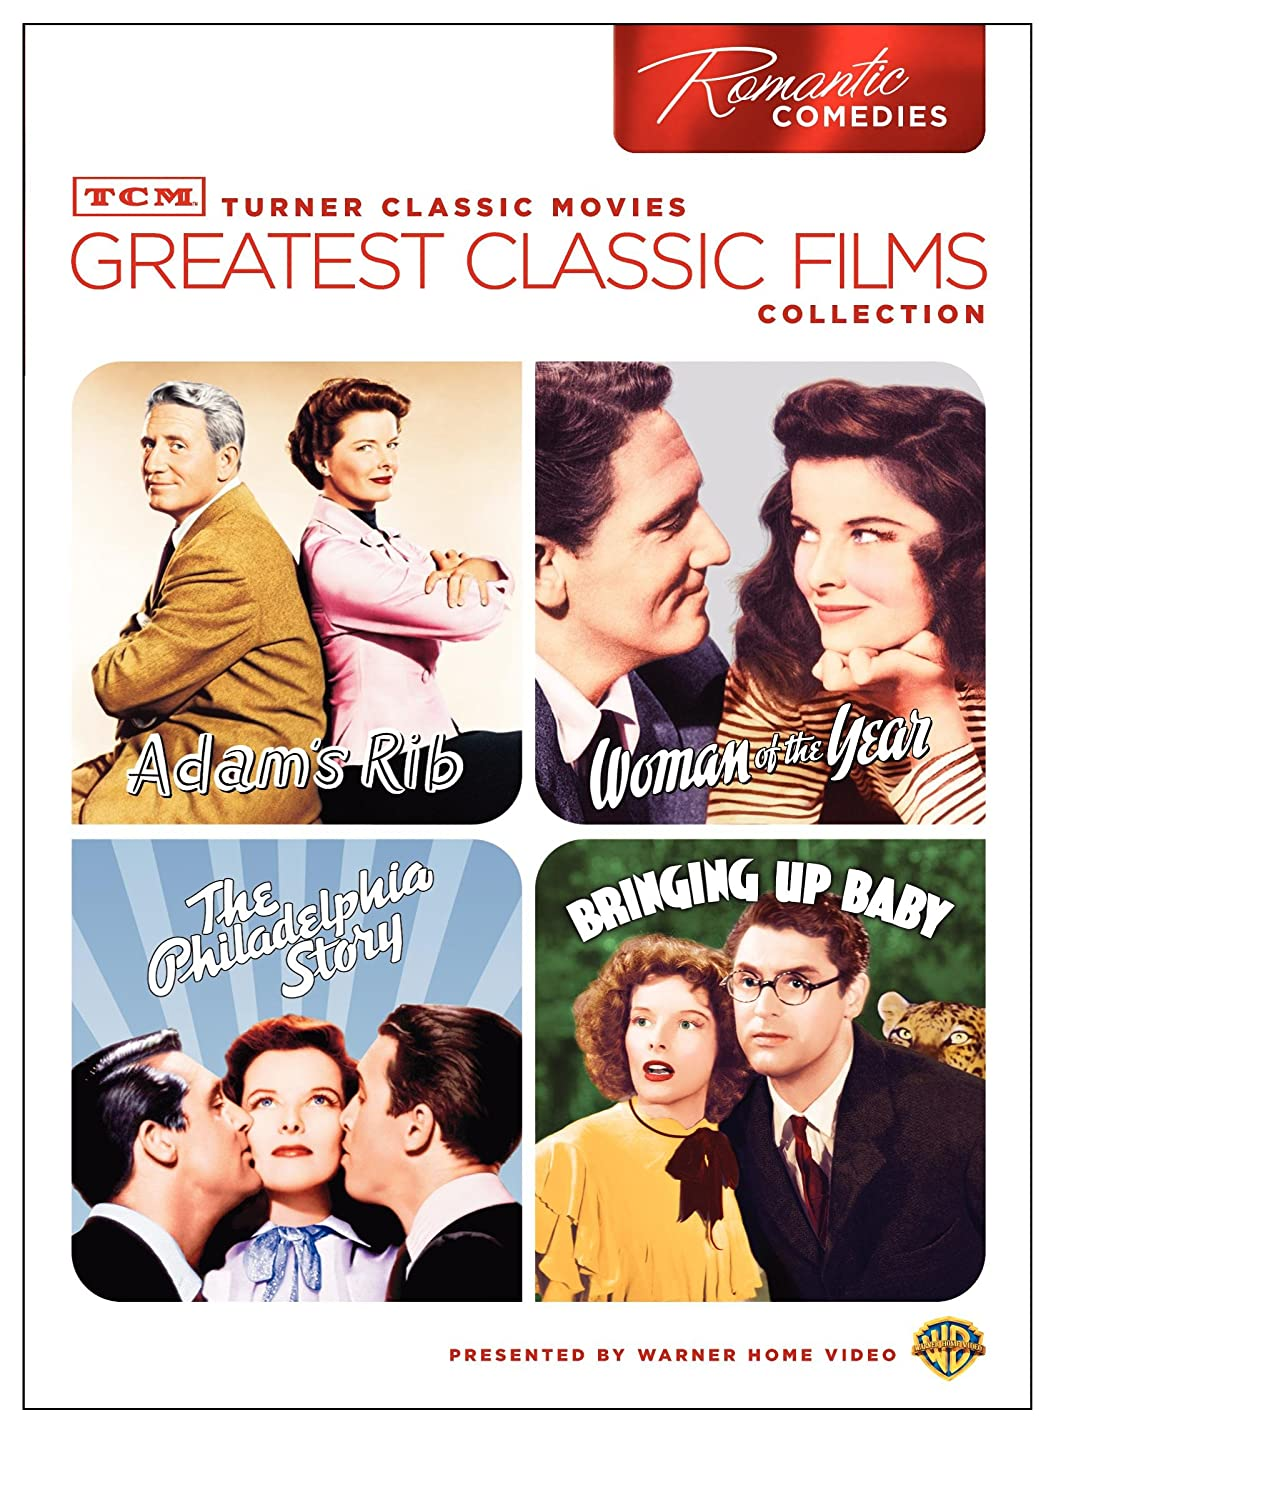 TCM Greatest Classic Films: Romantic Comedies (Adam's Rib/Woman of the Year/The Philadelphia Story/Bringing up Baby) Various Warner Bros. Home Video 5072295 Movie